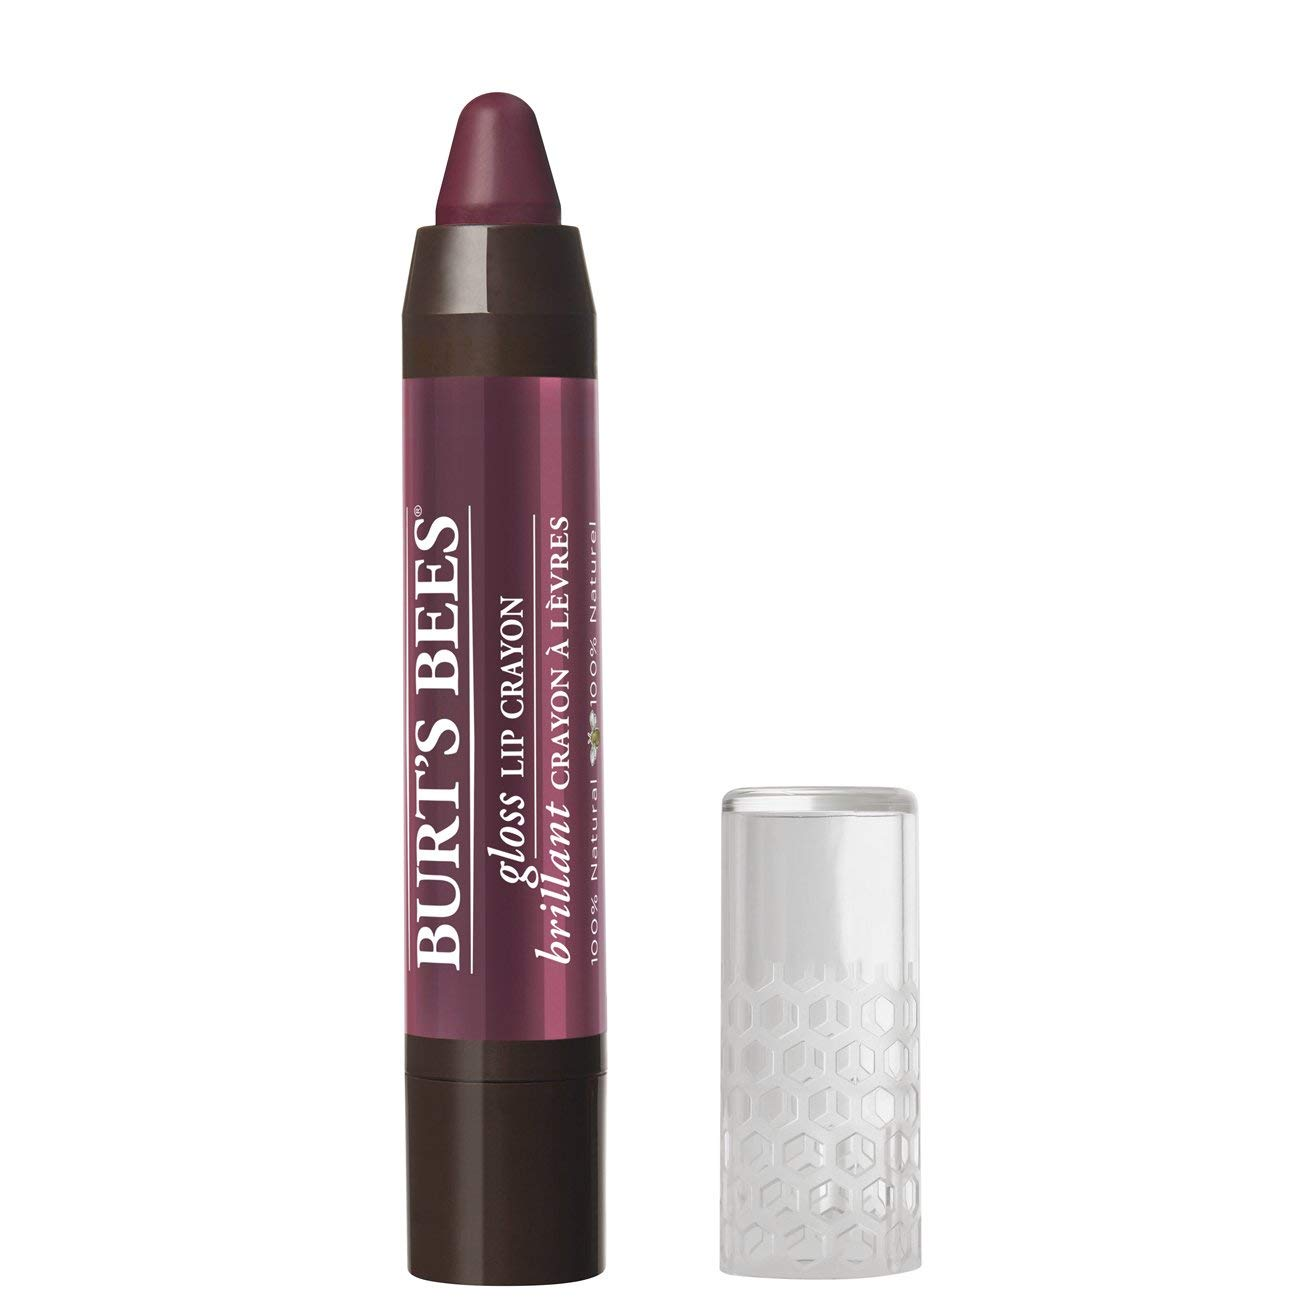 Burt's Bees 100% Natural, Gloss Lip Crayon, Pink Lagoon, 2.83 g Burt' s Bees 100% Natural CBee Europe Ltd 9285089663